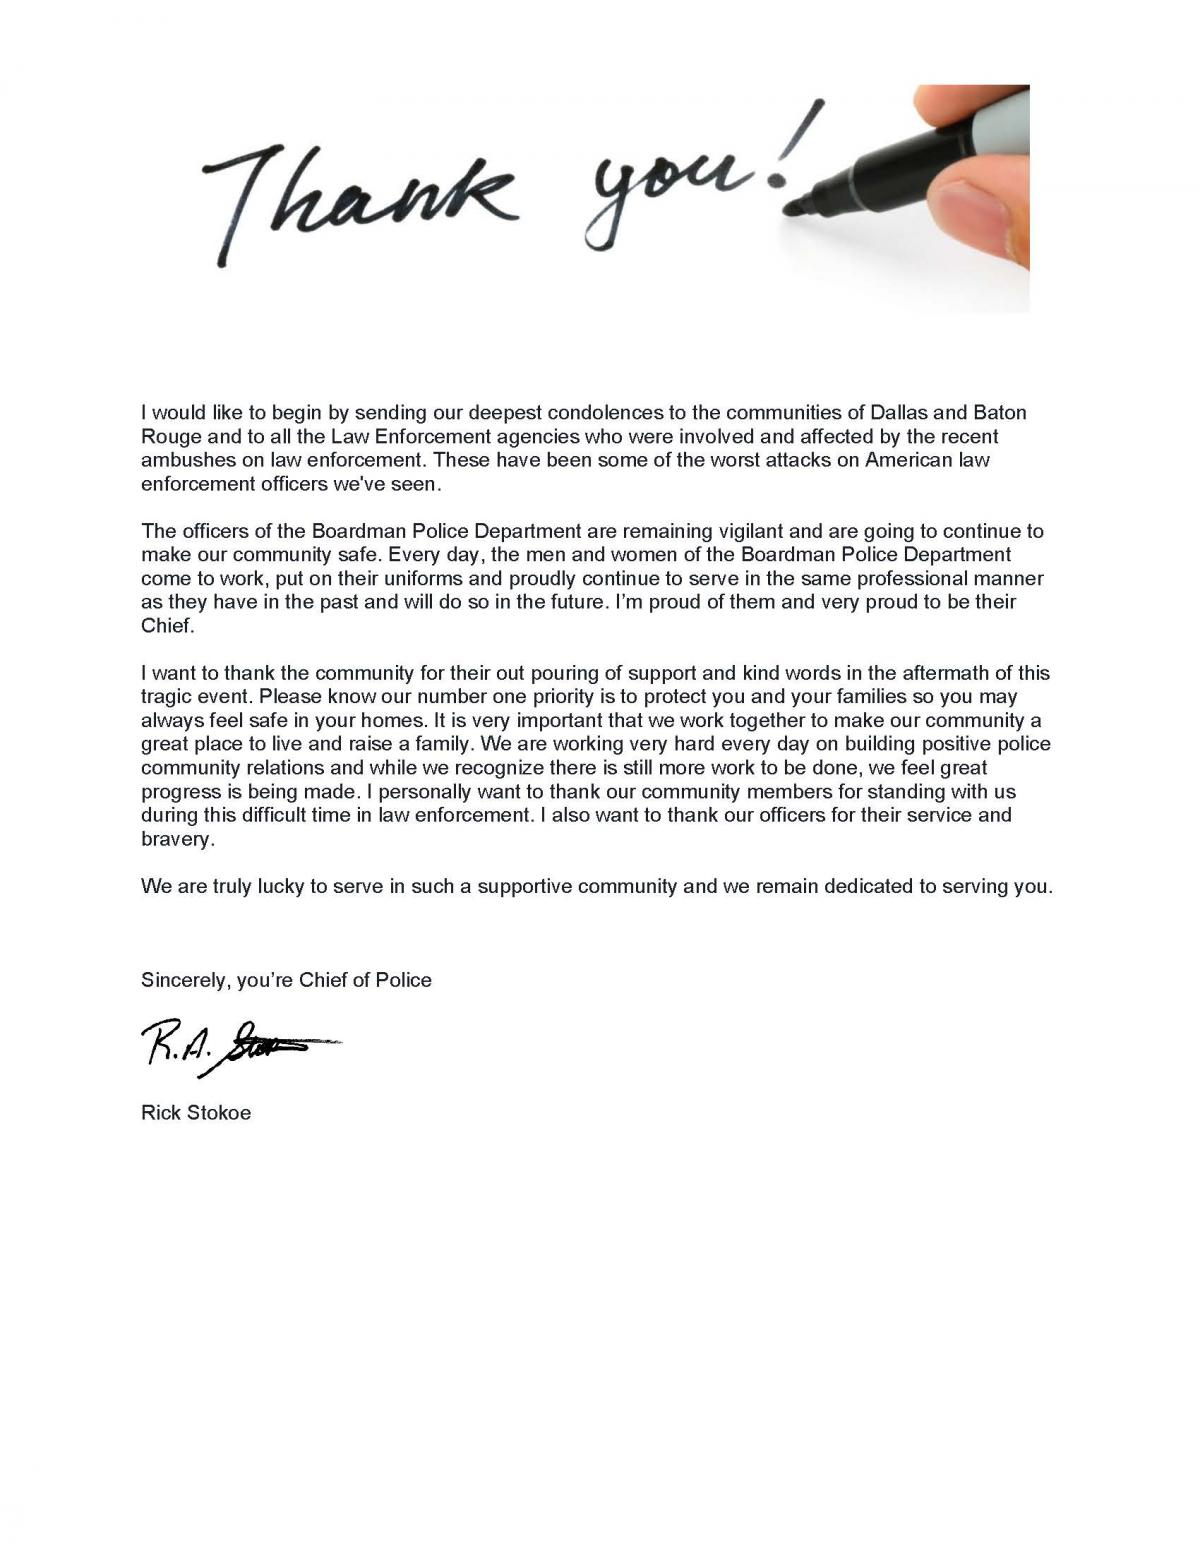 A Letter of Thank You from the Chief of Police | The City of